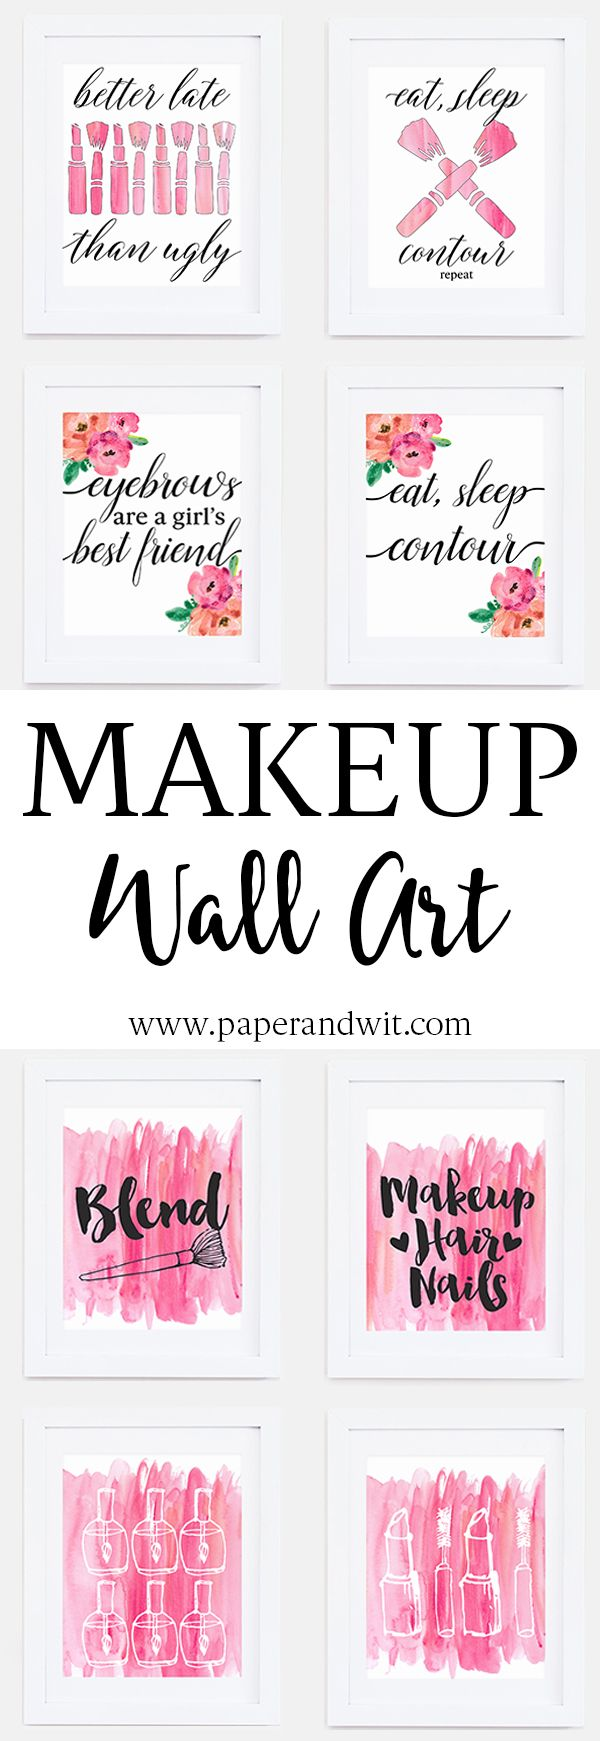 Makeup wall art - the perfect finishing touch to your beauty room.